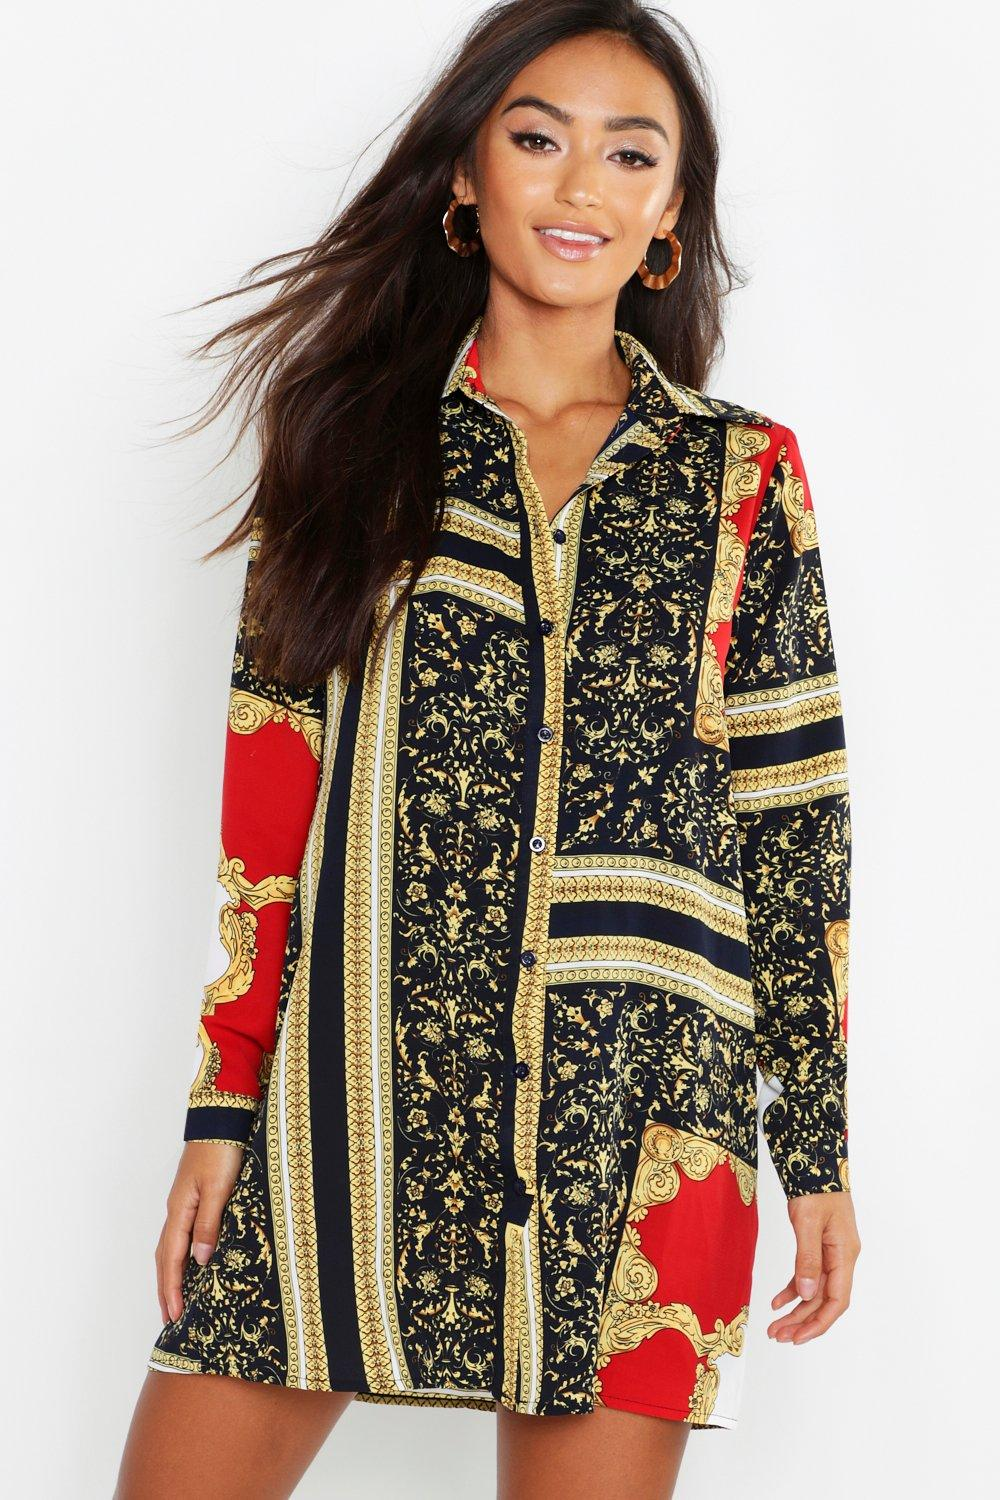 887af58d502f Womens Multi Petite Chain Print Shirt Dress. Hover to zoom